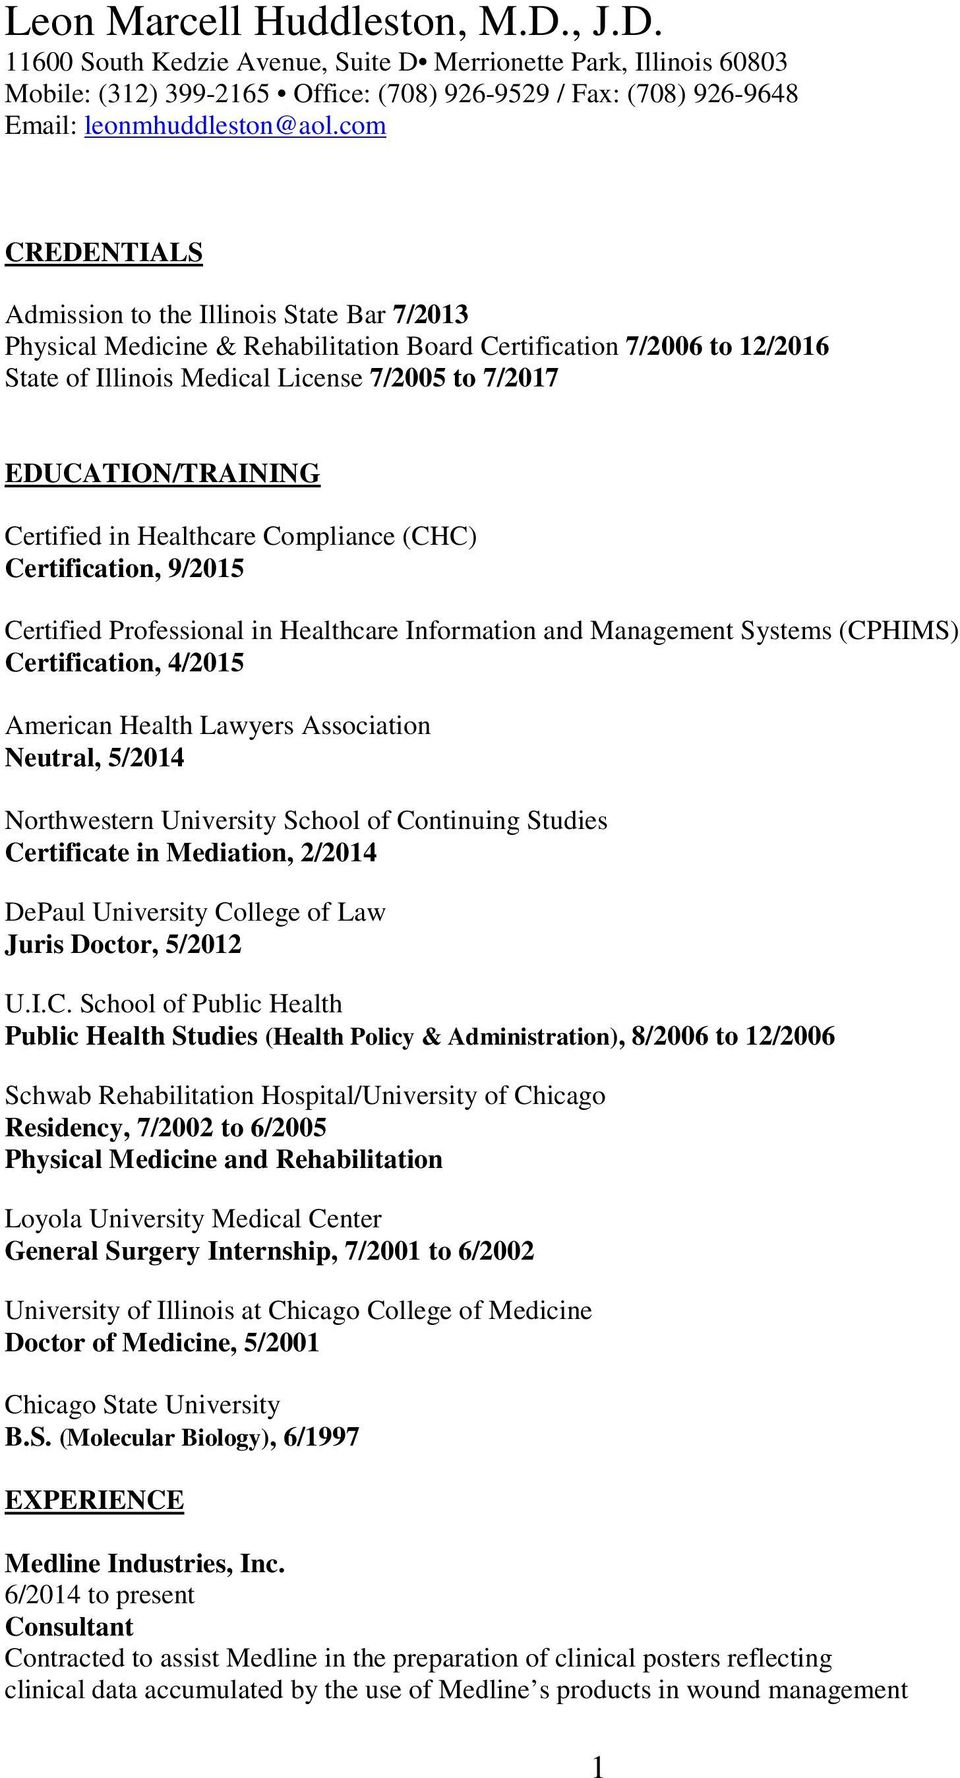 EDUCATION/TRAINING Certified in Healthcare Compliance (CHC) Certification, 9/2015 Certified Professional in Healthcare Information and Management Systems (CPHIMS) Certification, 4/2015 American